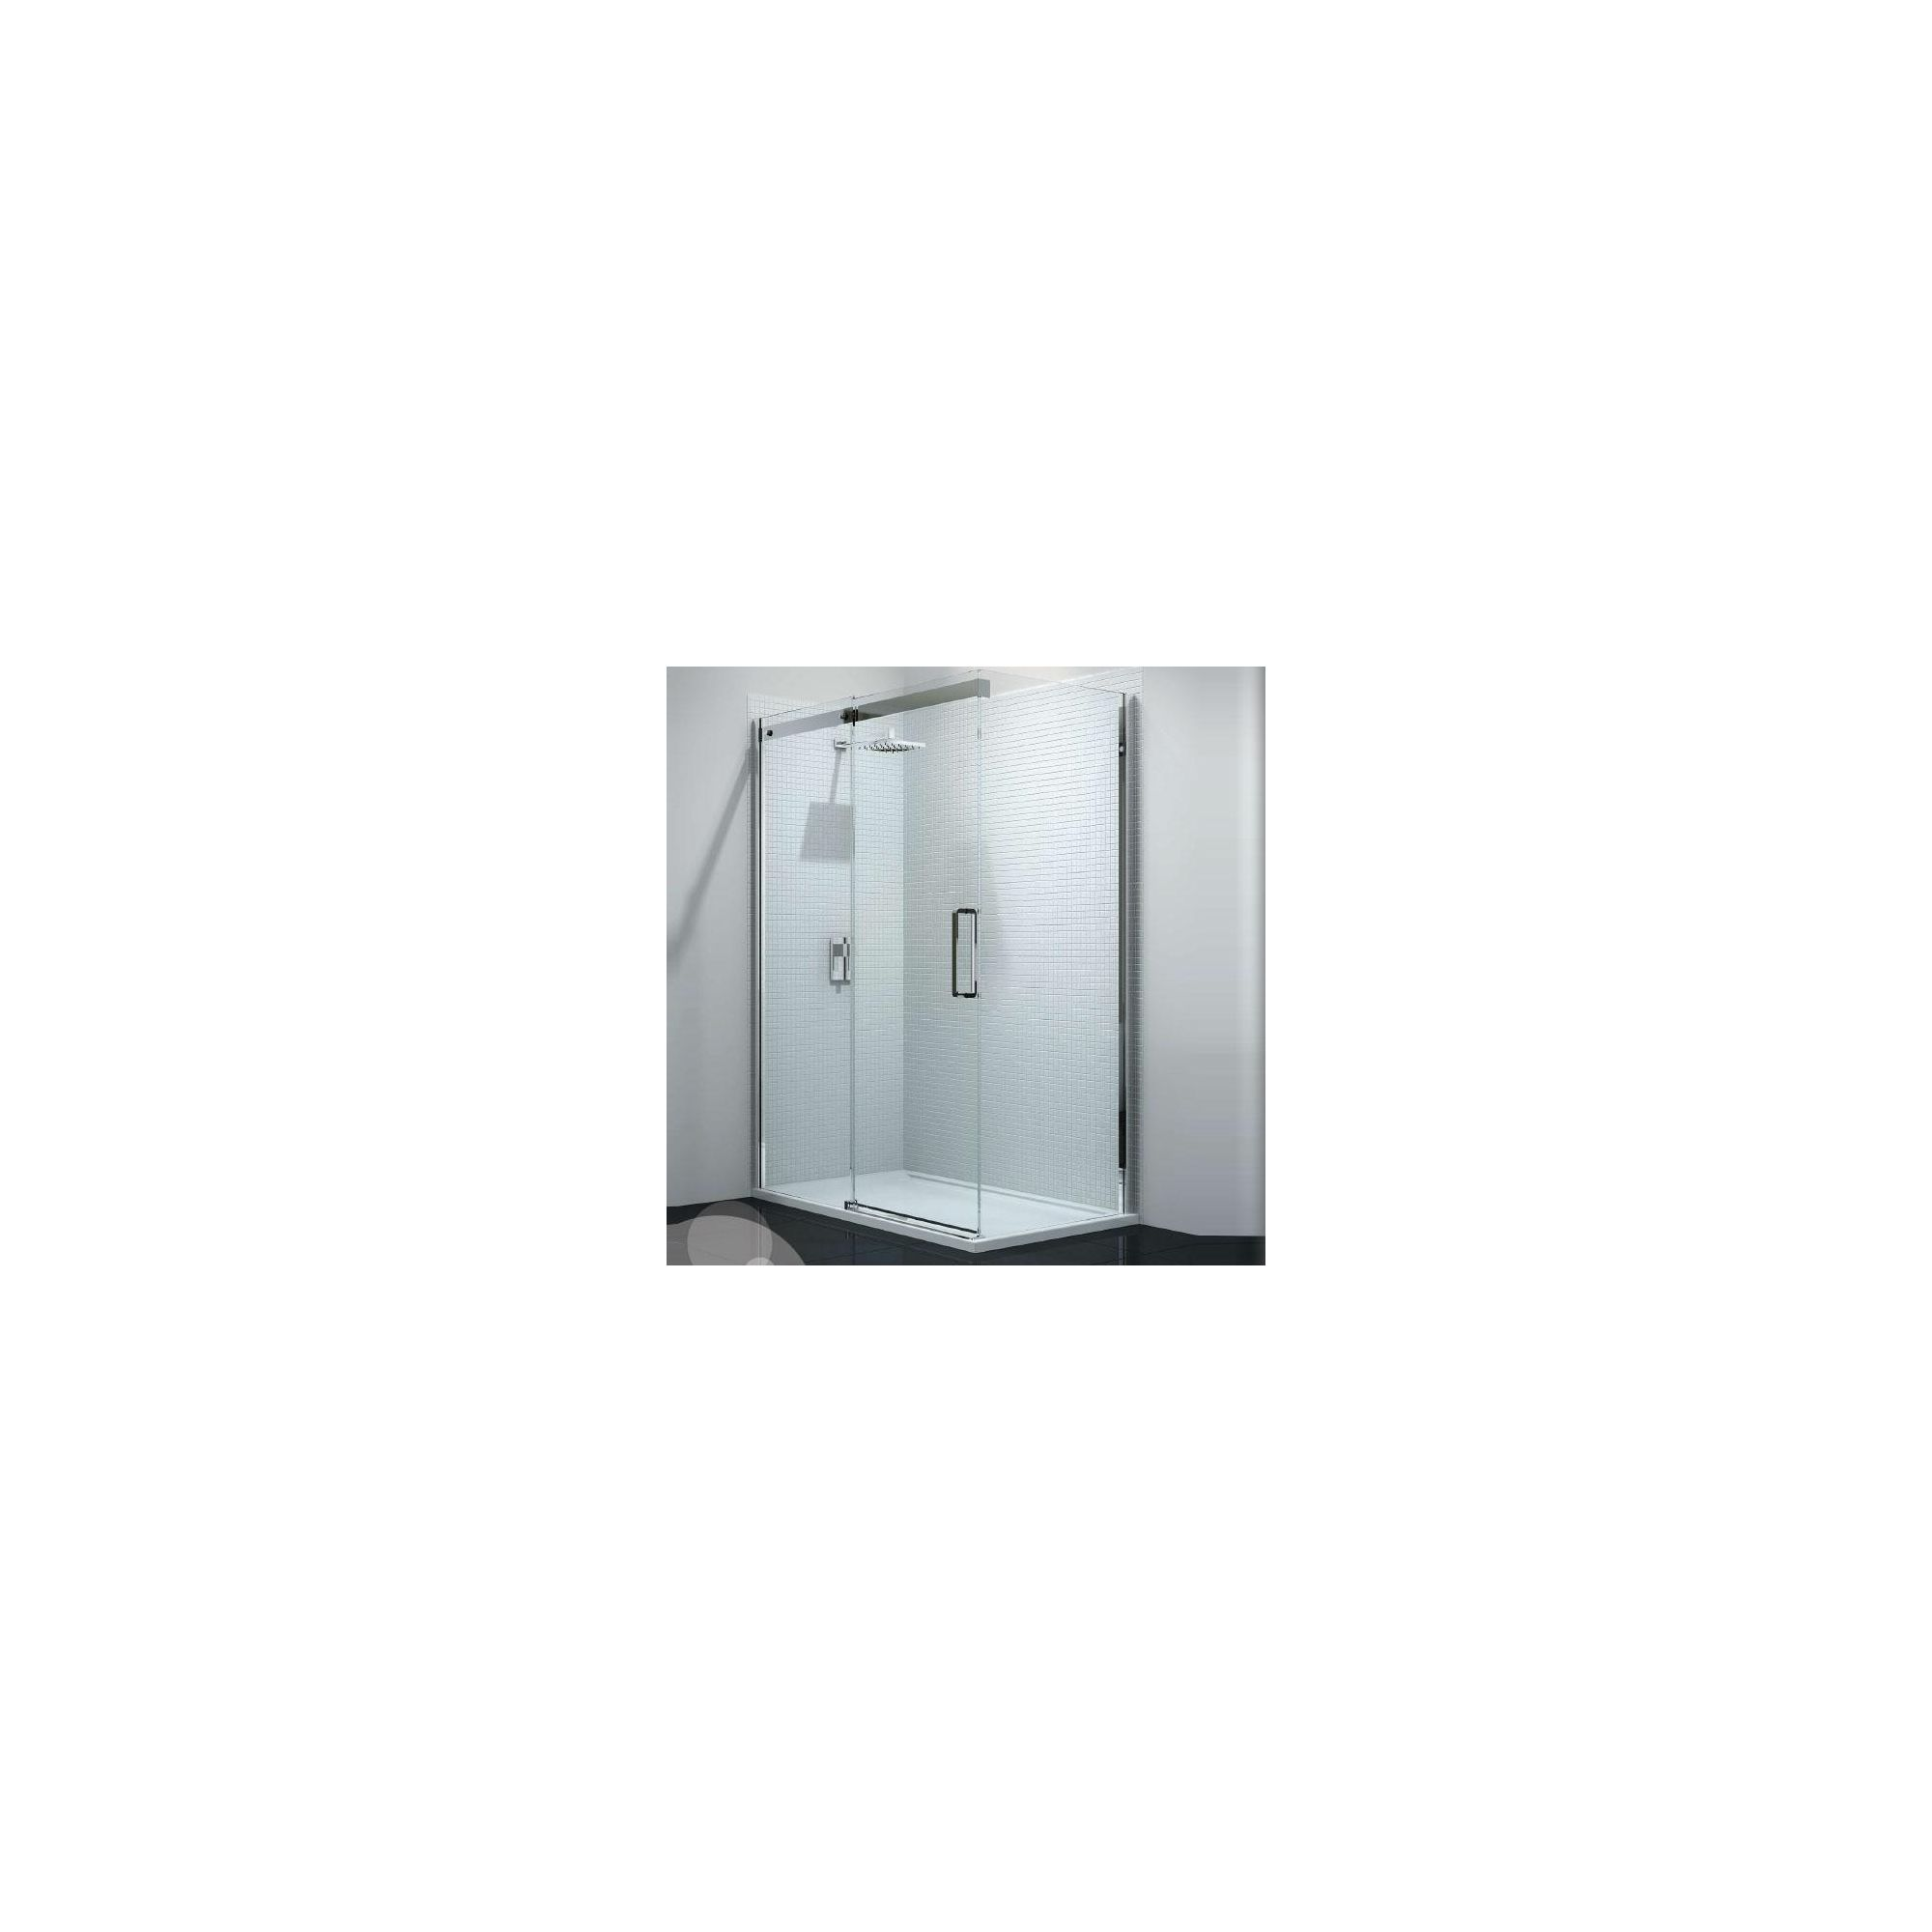 Merlyn Vivid Ten Sliding Door Shower Enclosure, 1200mm x 800mm, Low Profile Tray, 10mm Glass at Tesco Direct